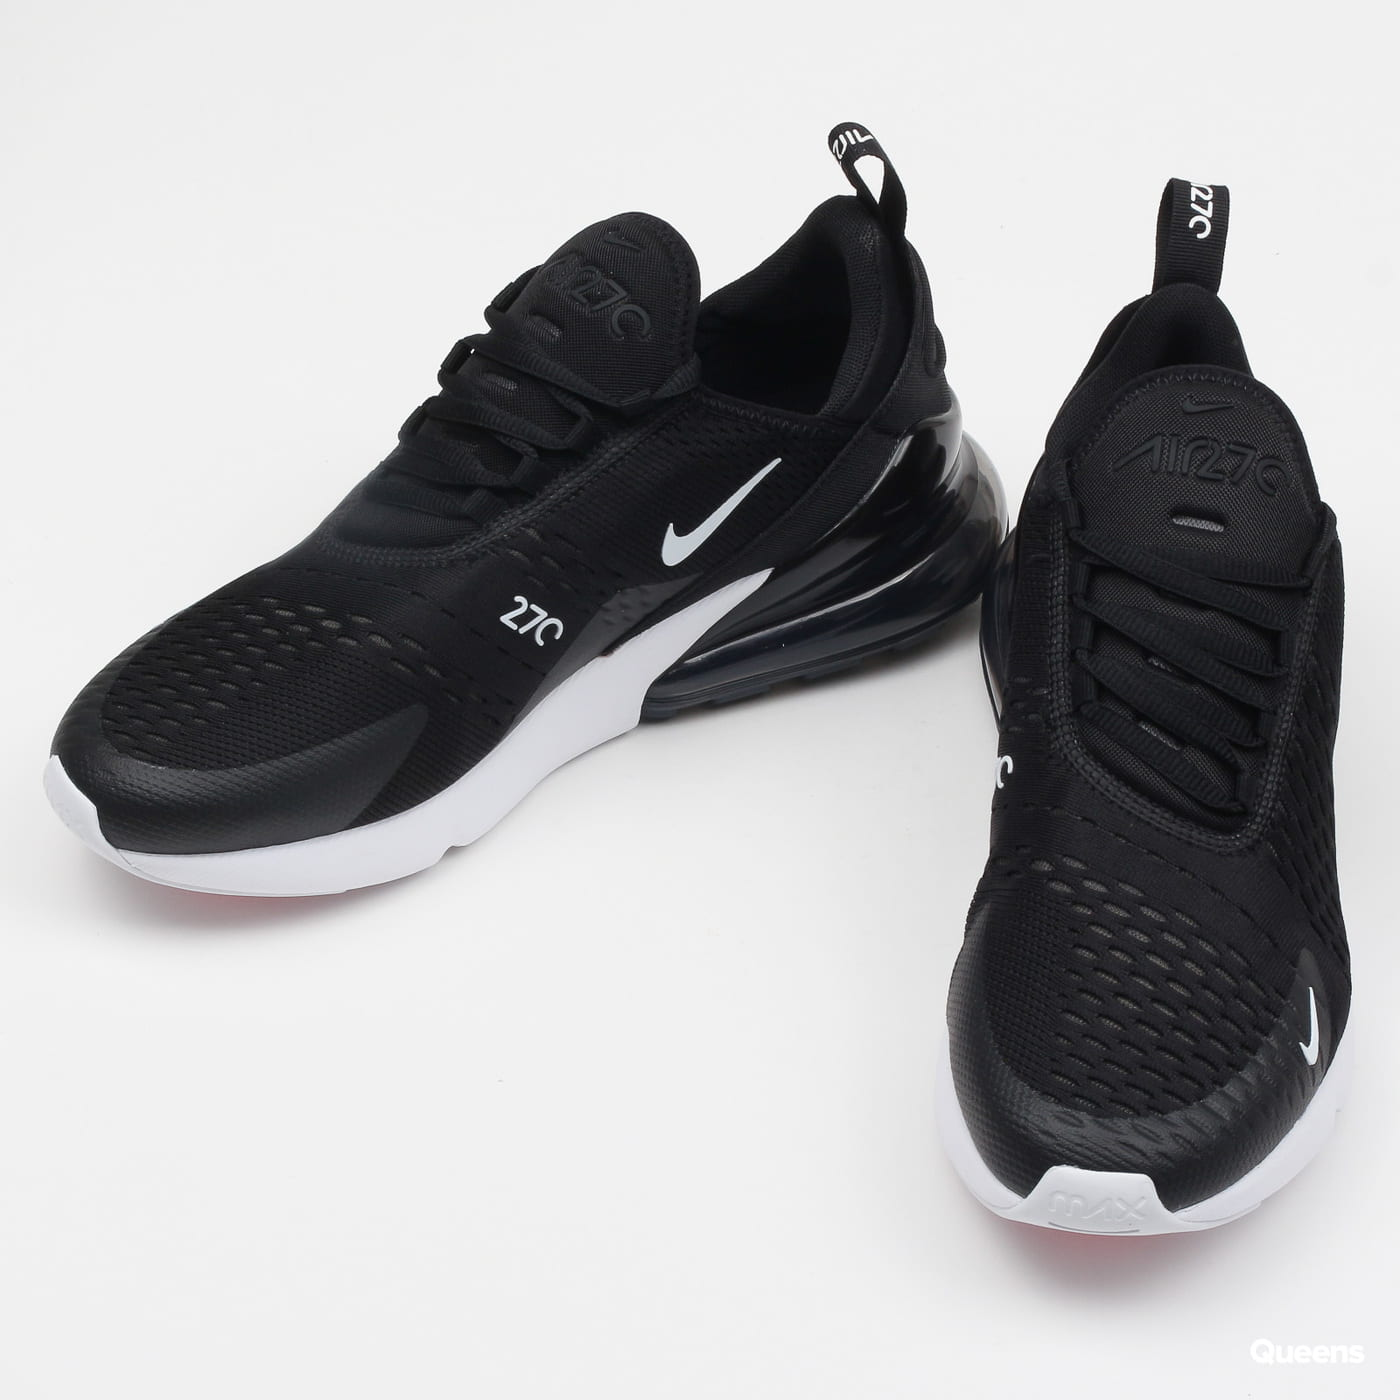 Nike Air Max 270 black / anthracite - white